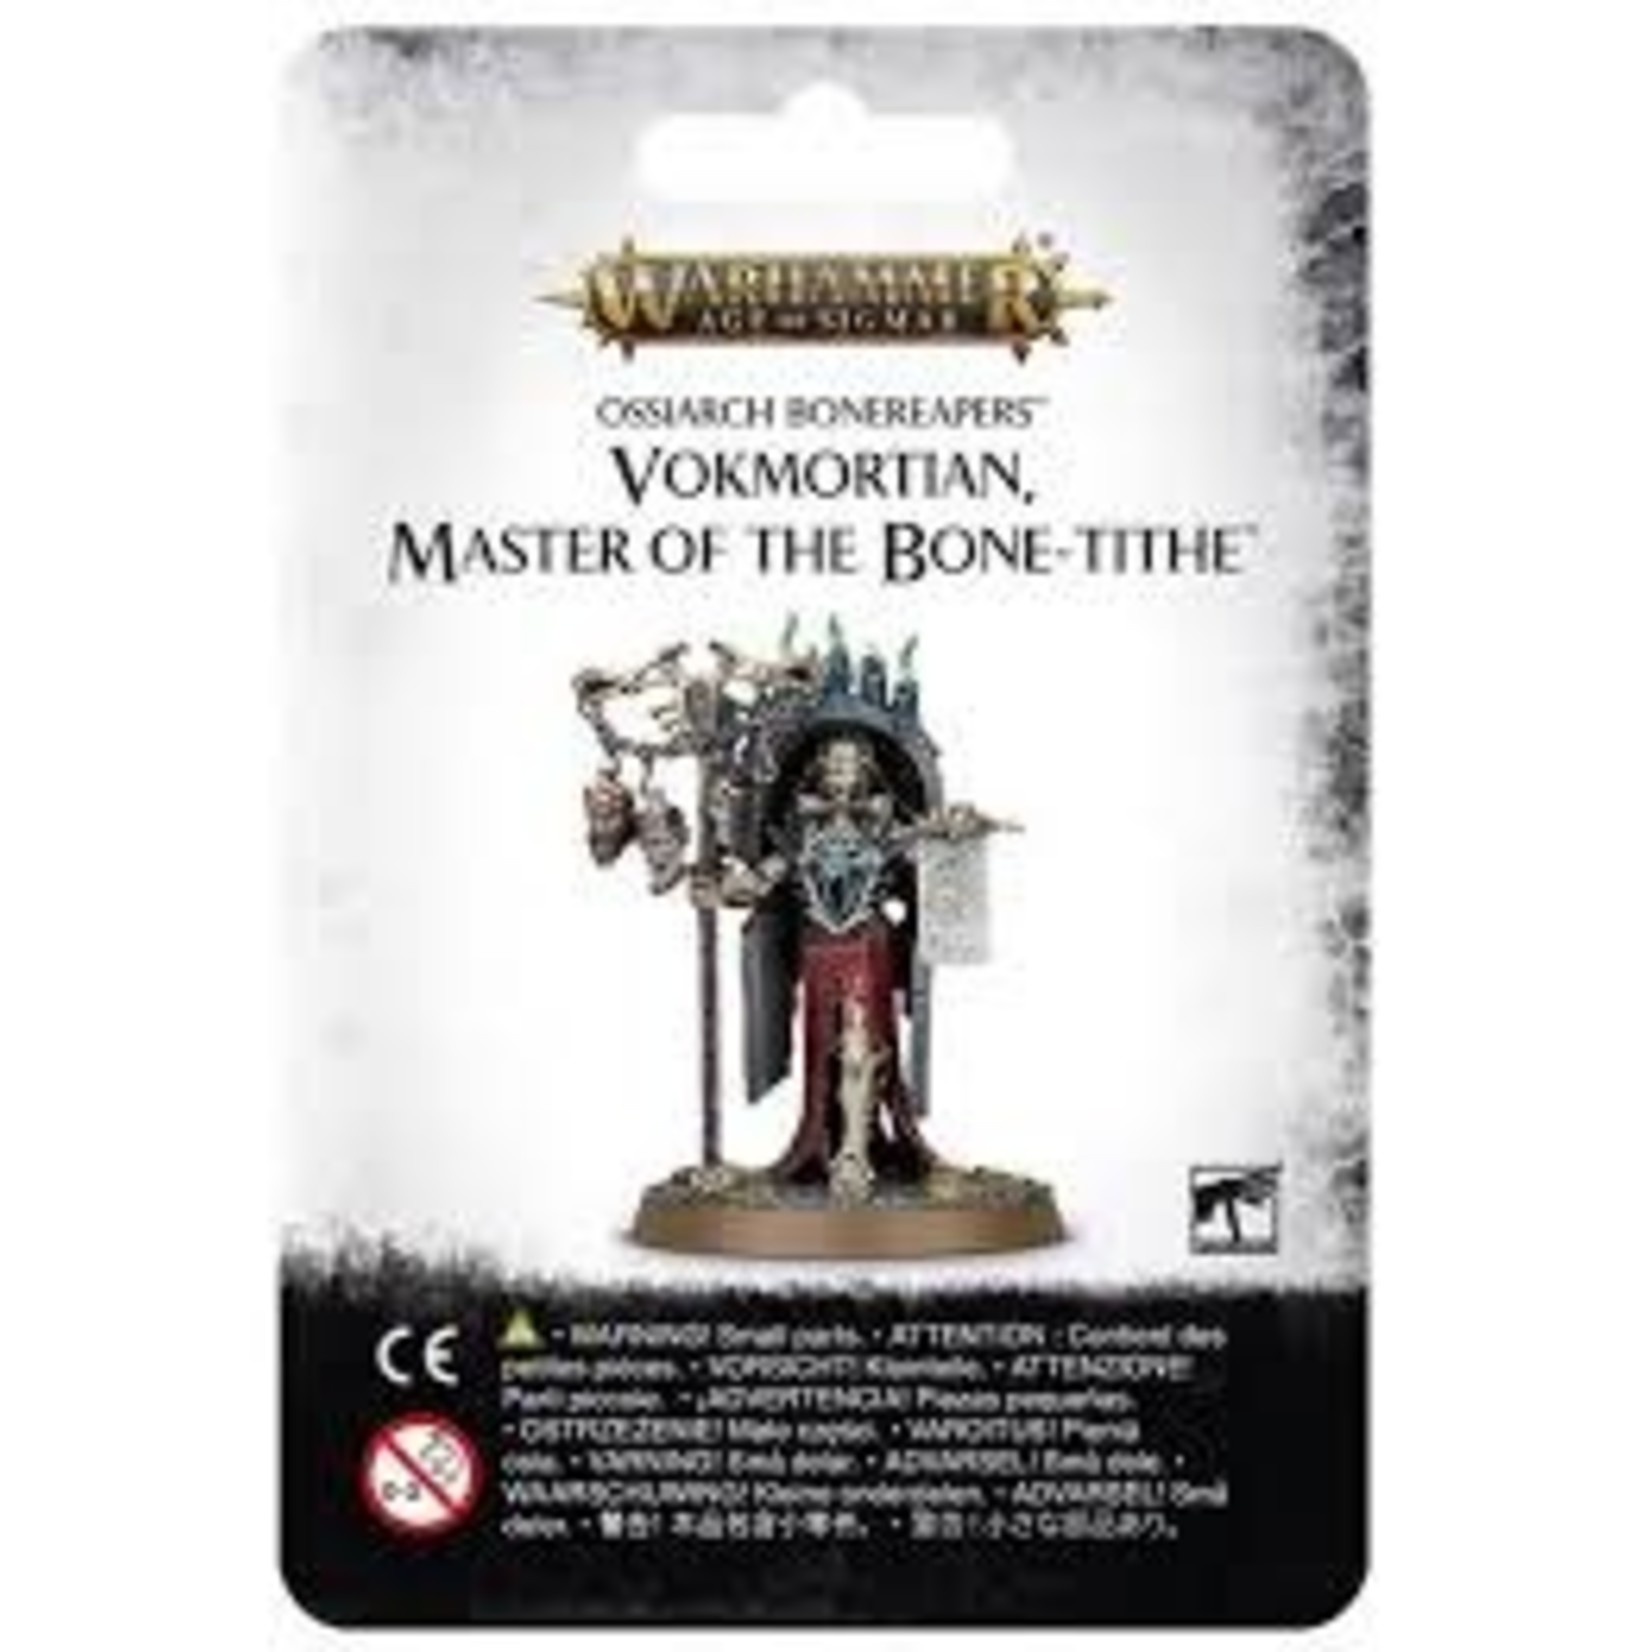 Ossiarch Bonereapers Vokmortian Master of the Bone Tithe (AOS)